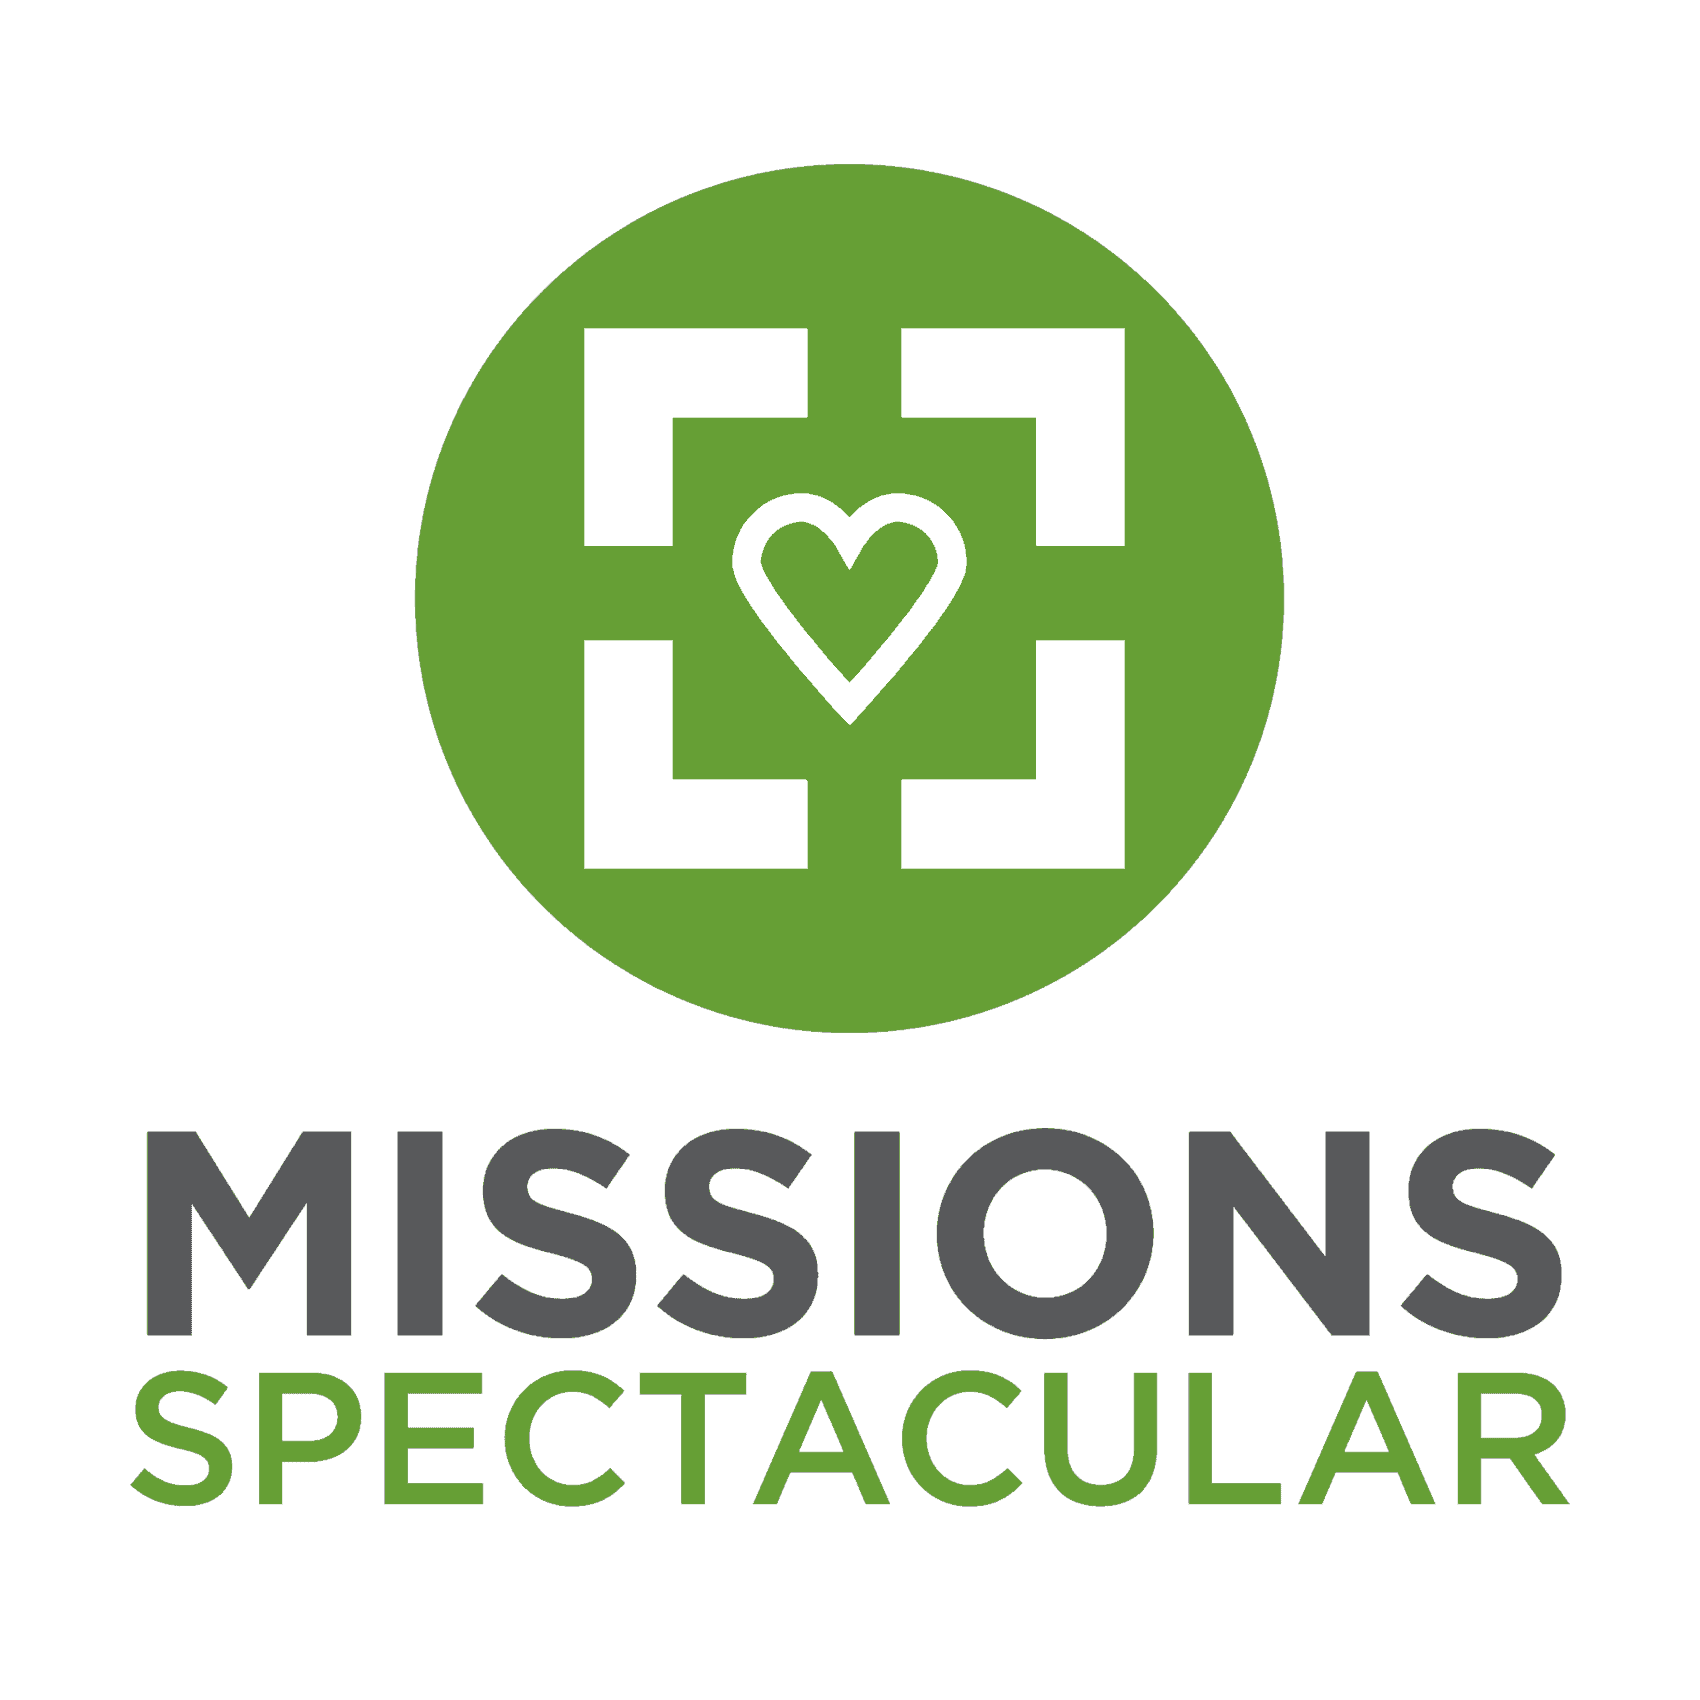 Missions Spectacular